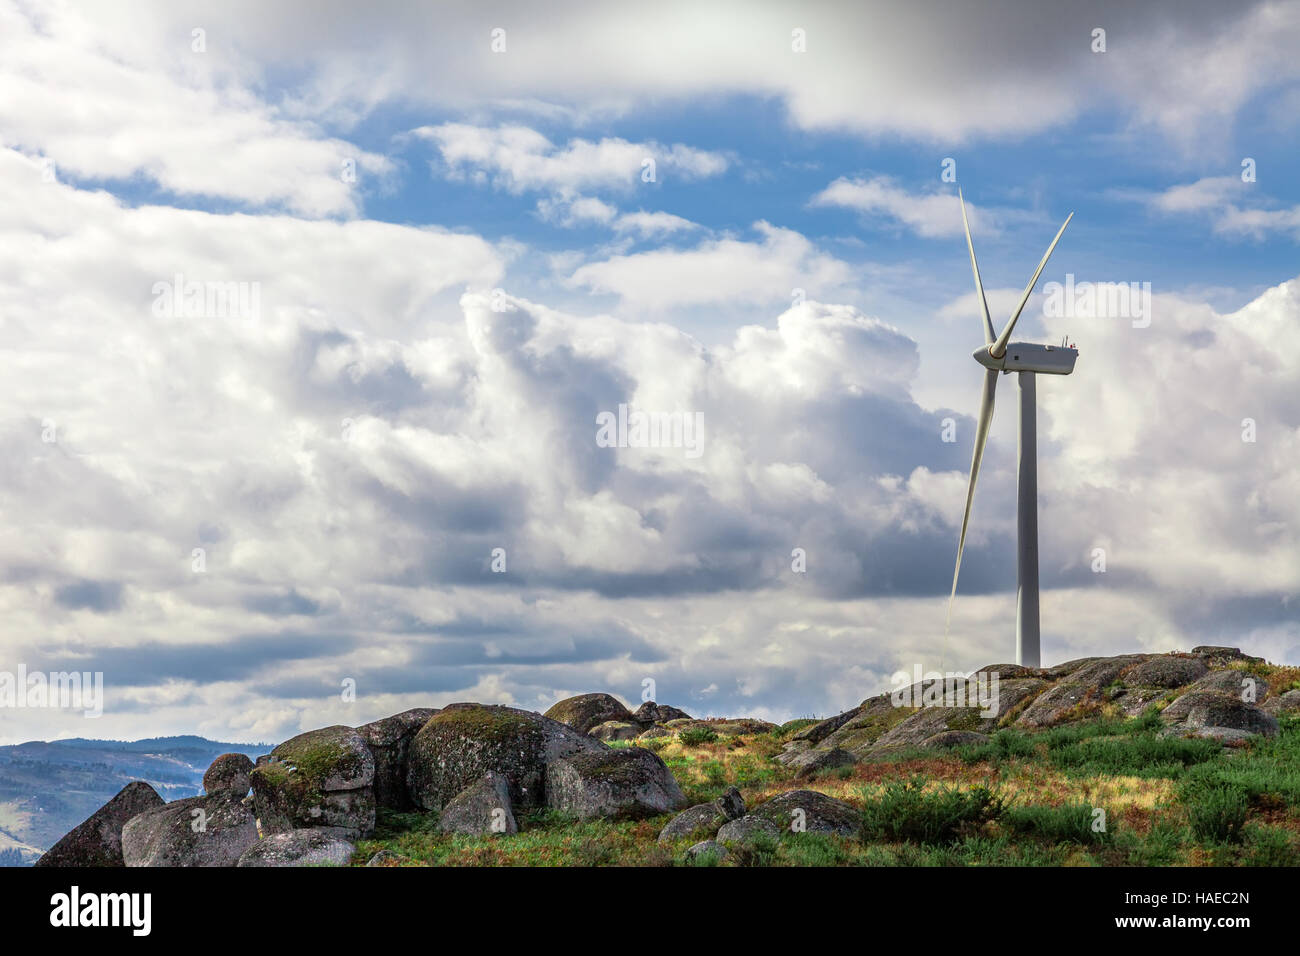 Wind turbine generator on top a hill for the production of clean and renewable energy near Fafe, Portugal - Stock Image